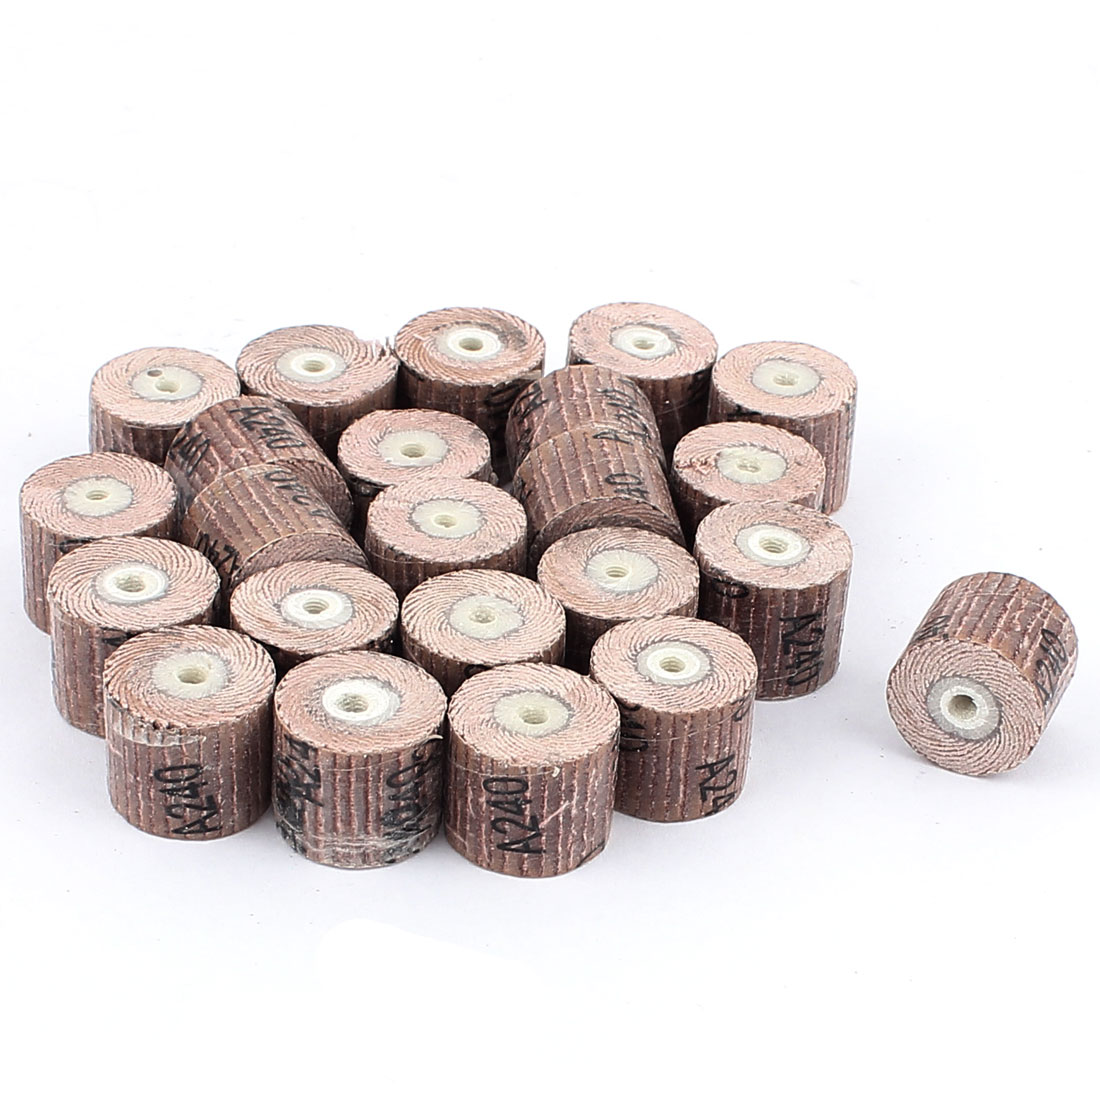 23 Pieces 240 Grit 17x14x3mm Emery Cloth Grinding Unmounted Flap Wheel Brush